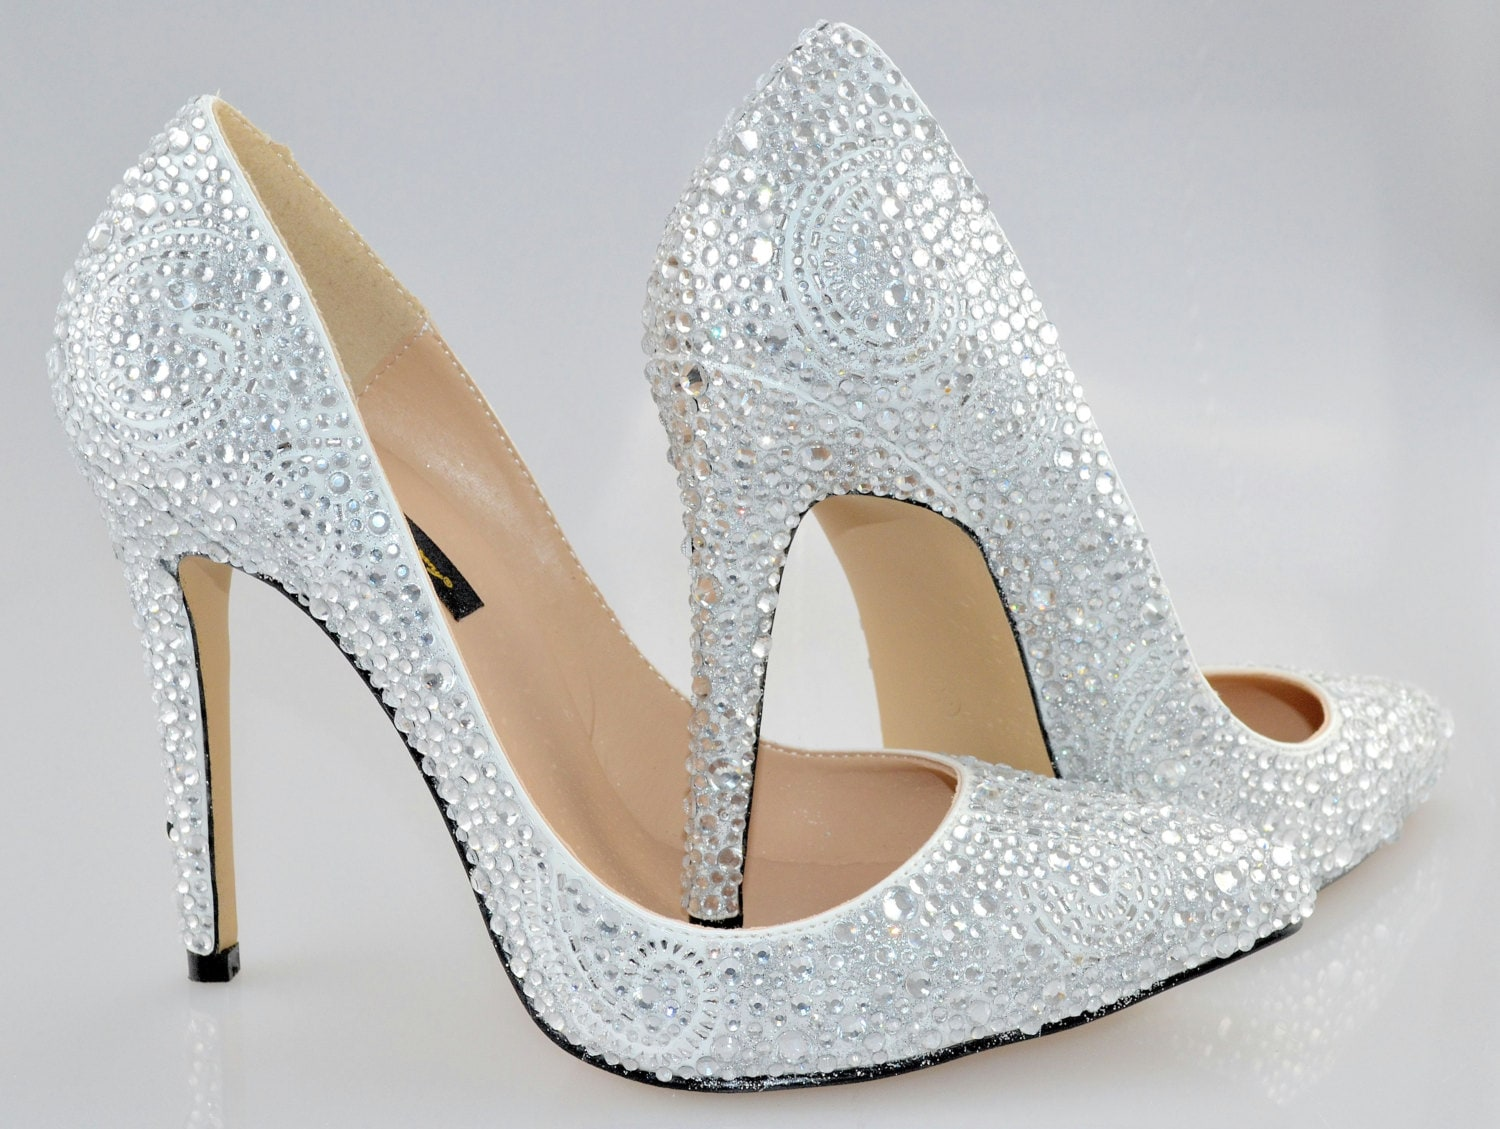 c5996464d3a Swarovski Crystal Glitter Bridal High Heel Stiletto Corset